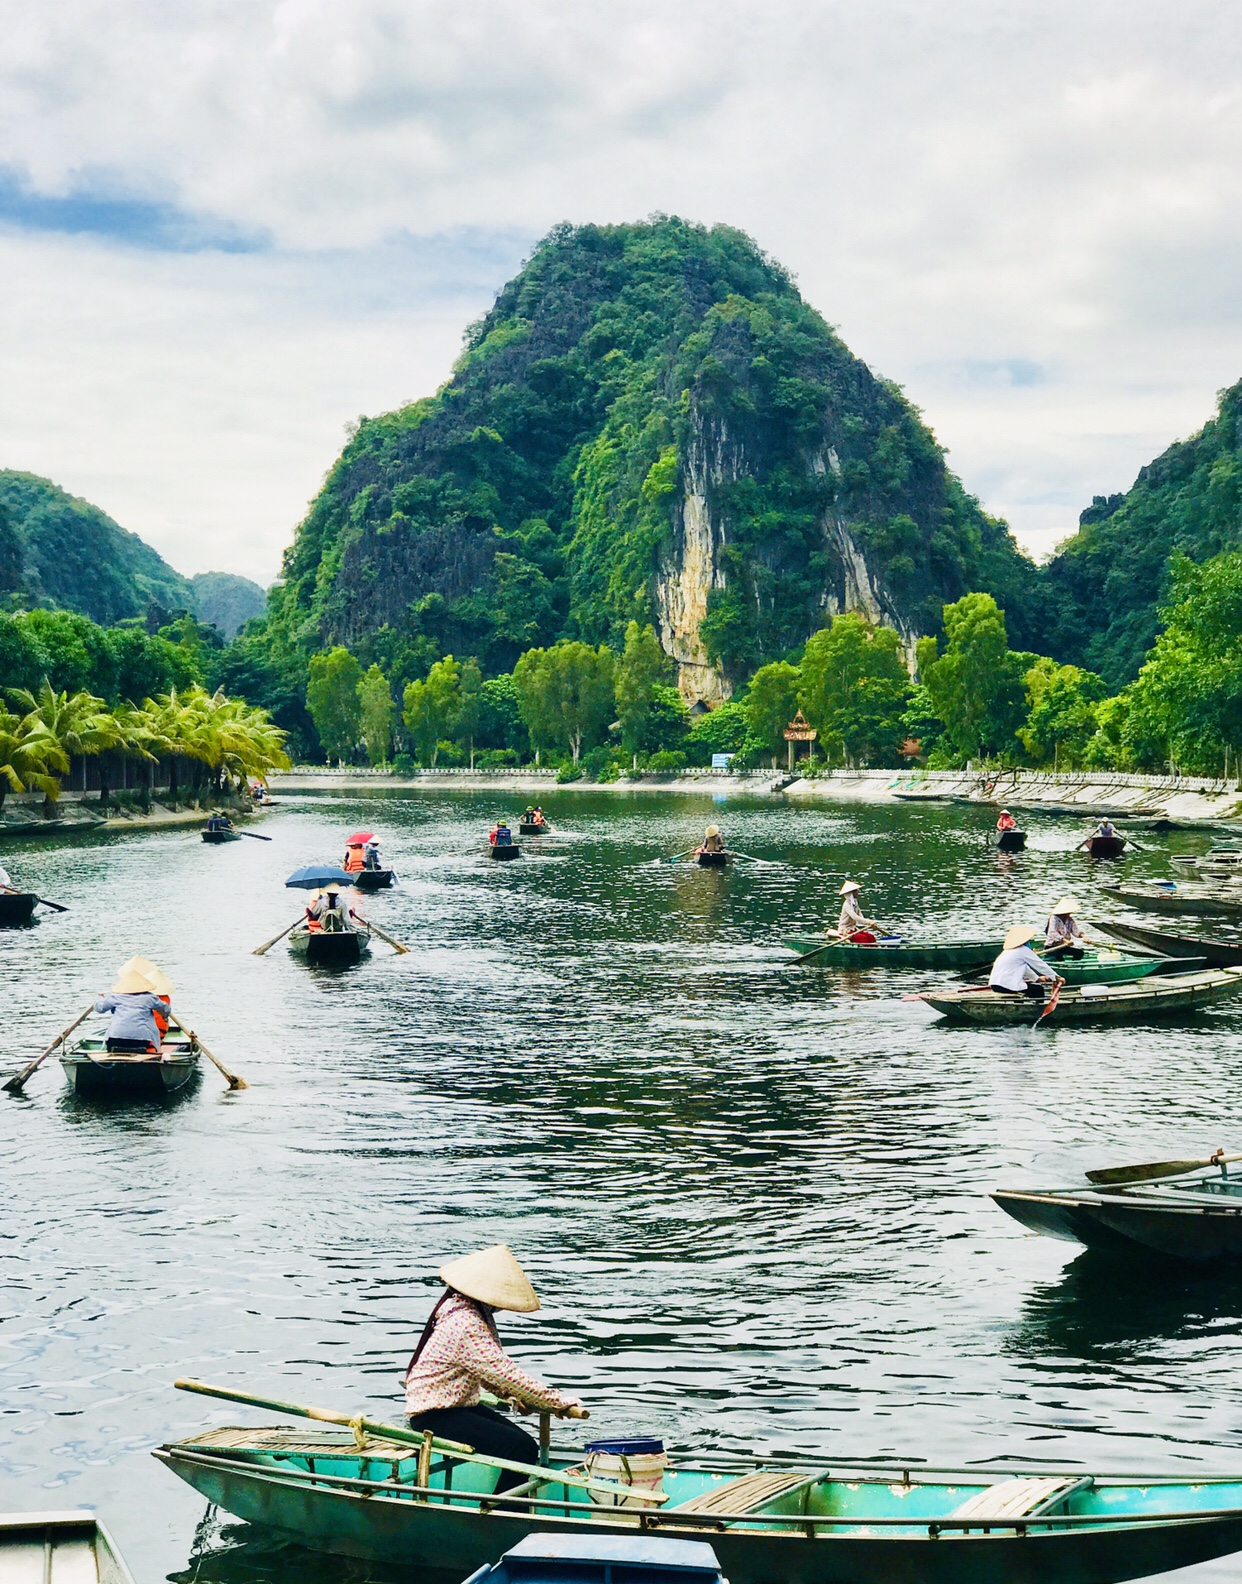 Have You Visited The Tam Coc Village In Hanoi